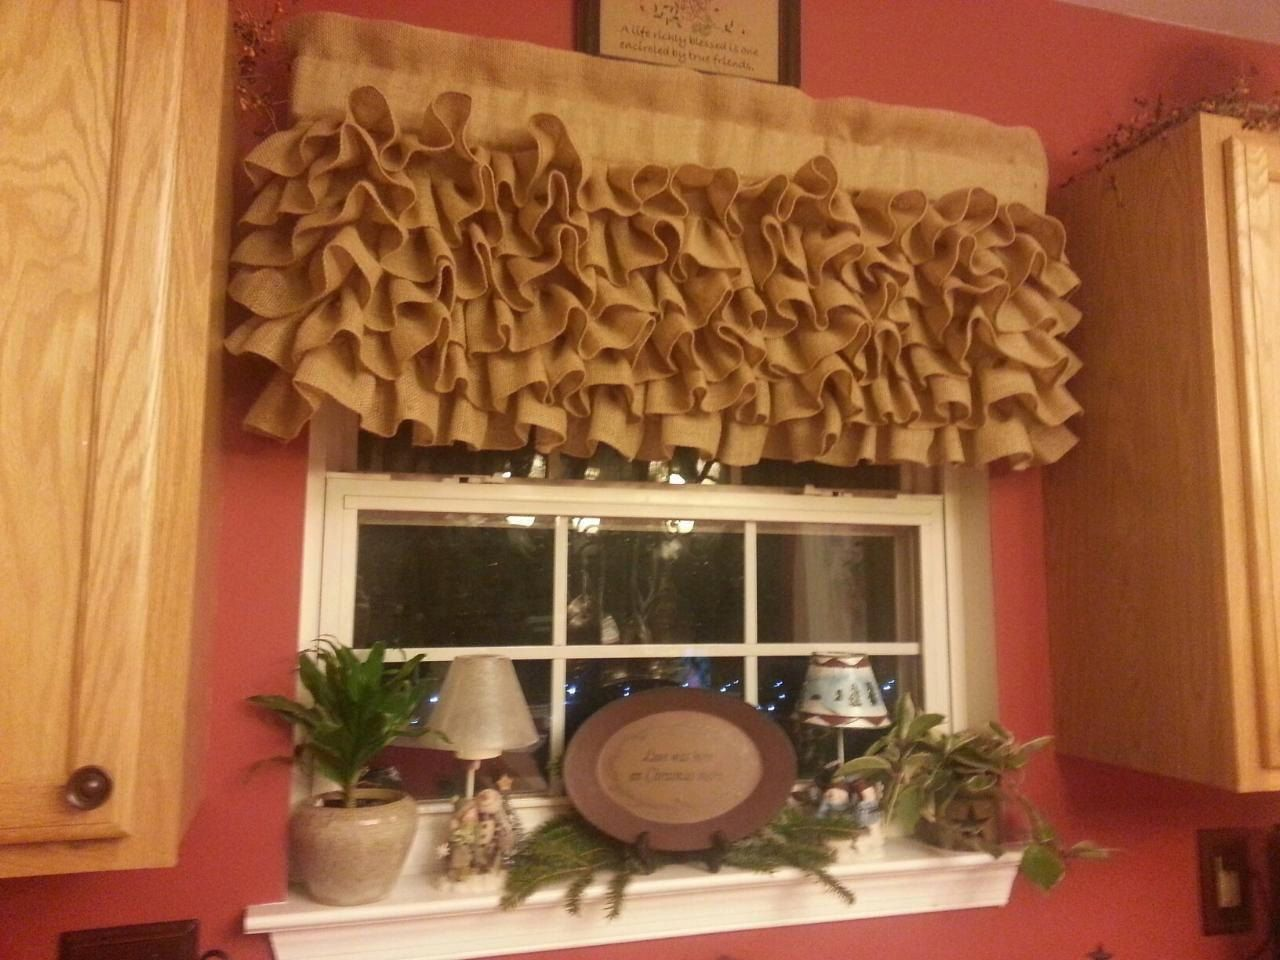 Burlap curtain burlap valance burlap curtains curtains valance